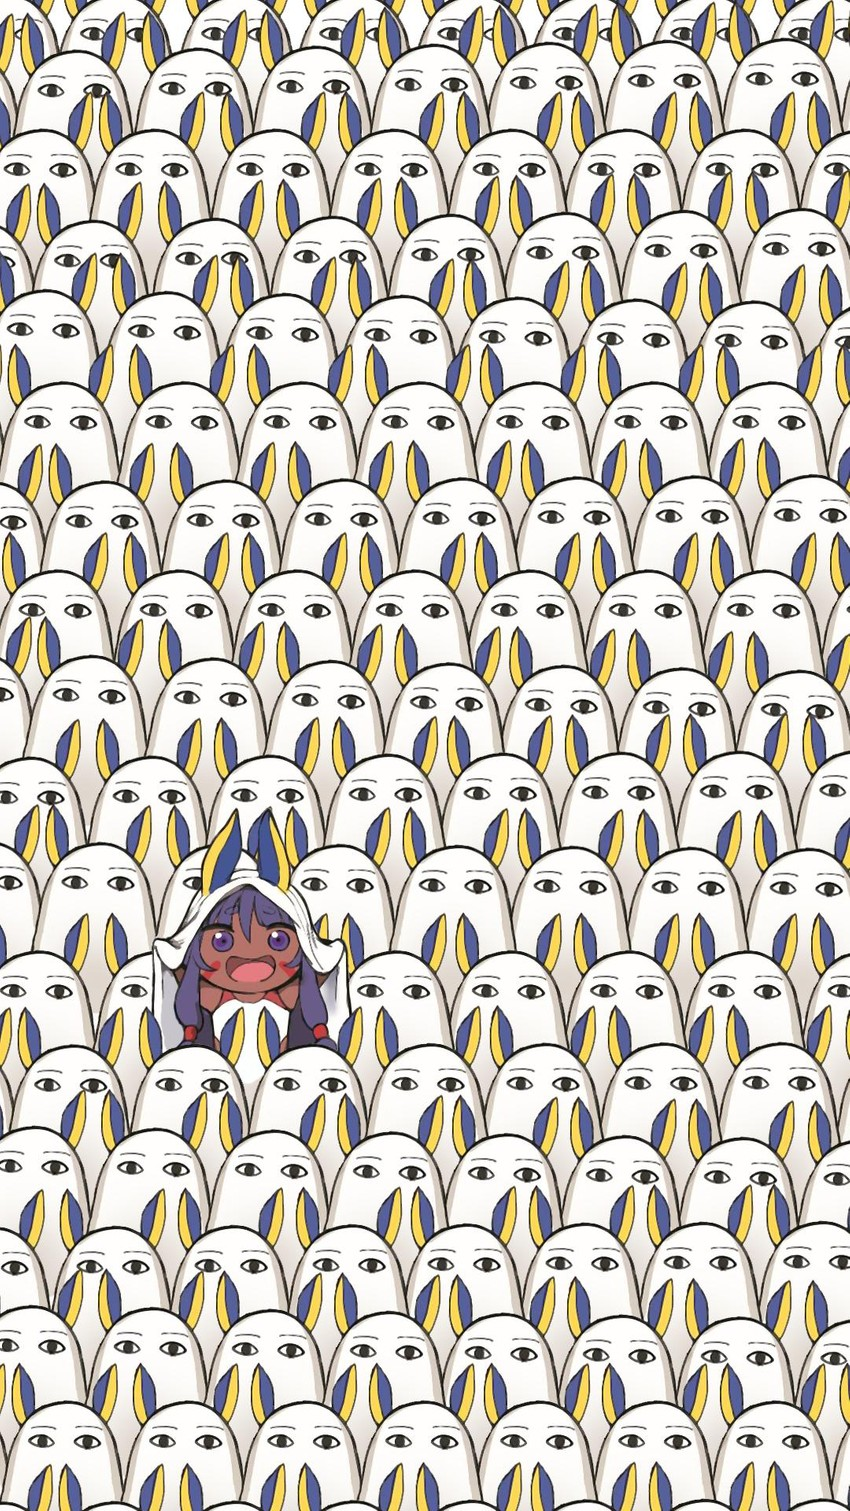 medjed, nitocris, and nitocris (himouto! umaru-chan and etc) drawn by hews hack